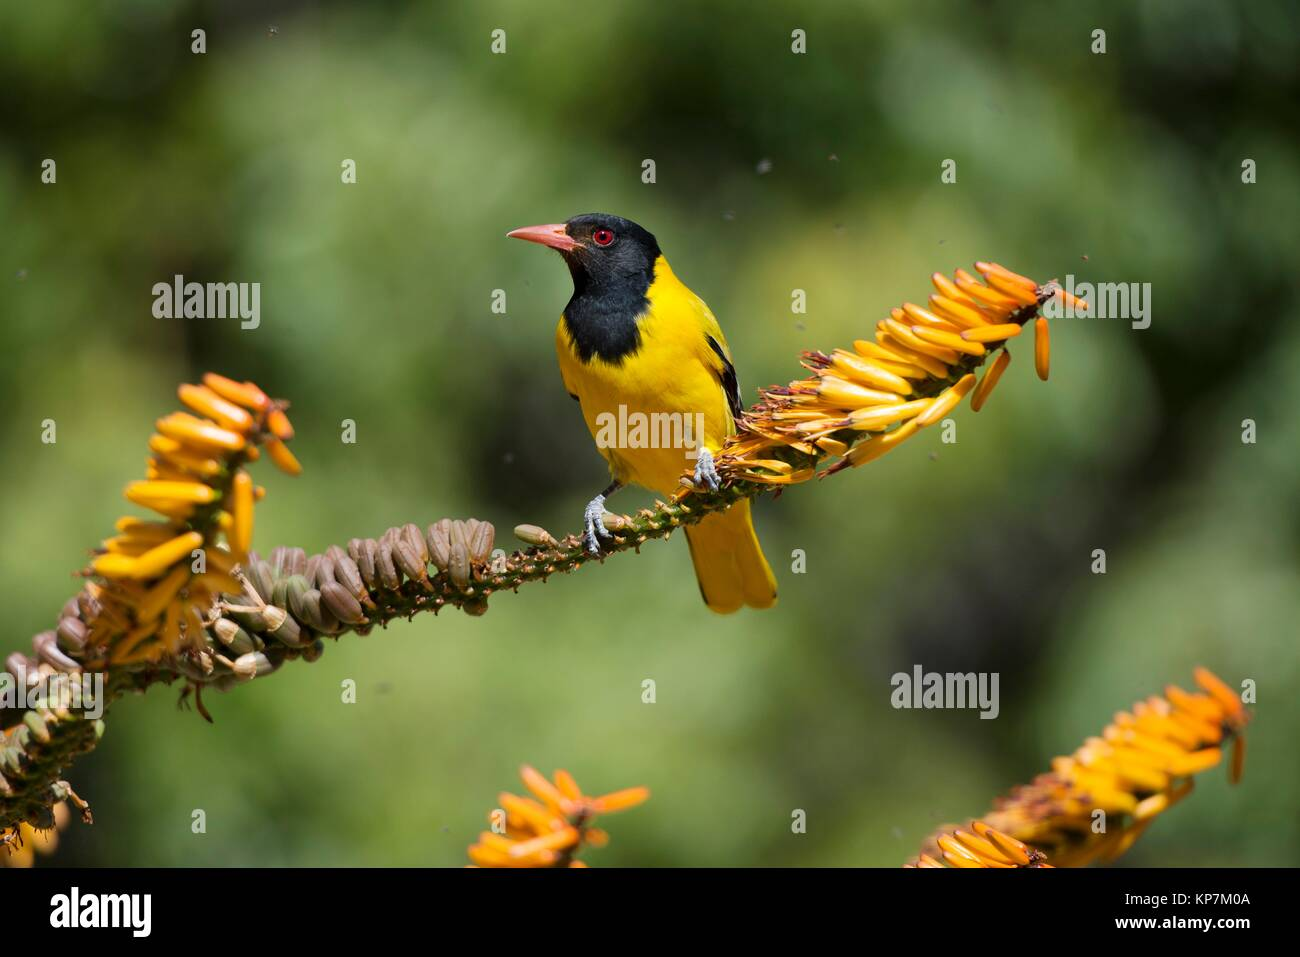 Blackheaded Oriole (Oriolus larvatus) on twig, Kruger National Park, Transvaal, South Africa. - Stock Image